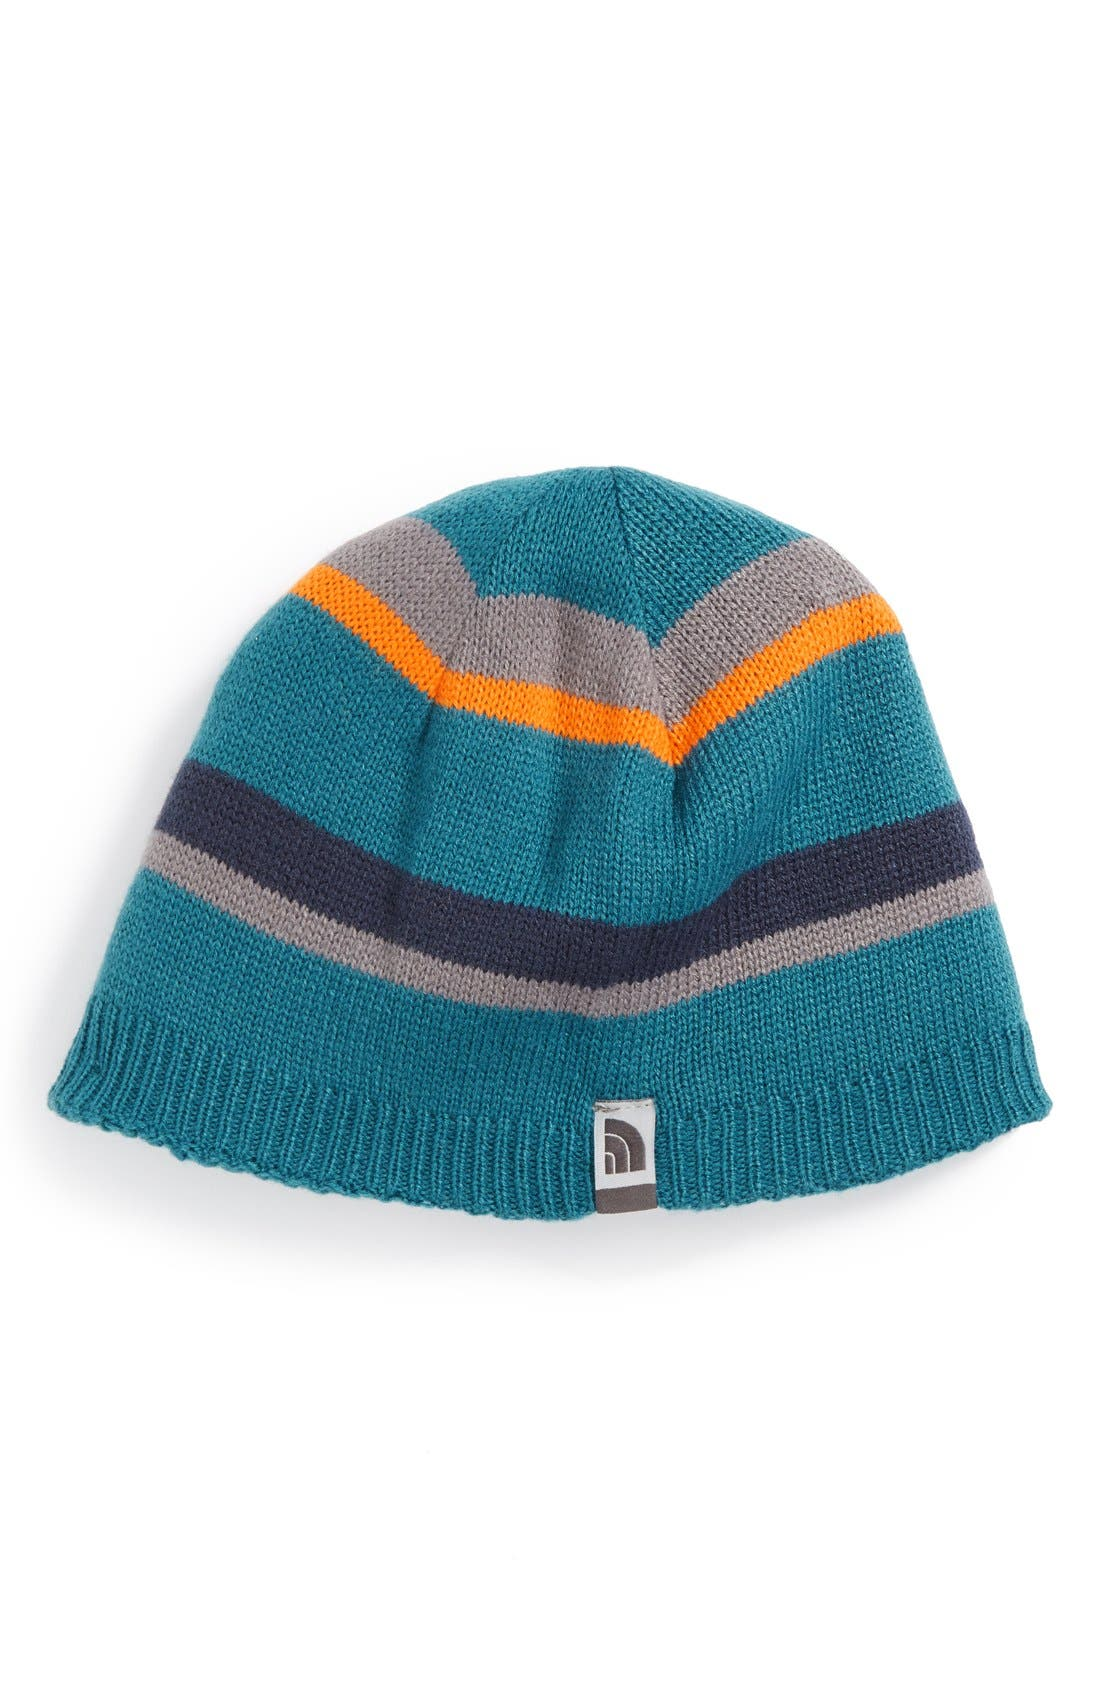 Alternate Image 2  - The North Face 'Youth Gone Wild' Beanie (Big Boys)